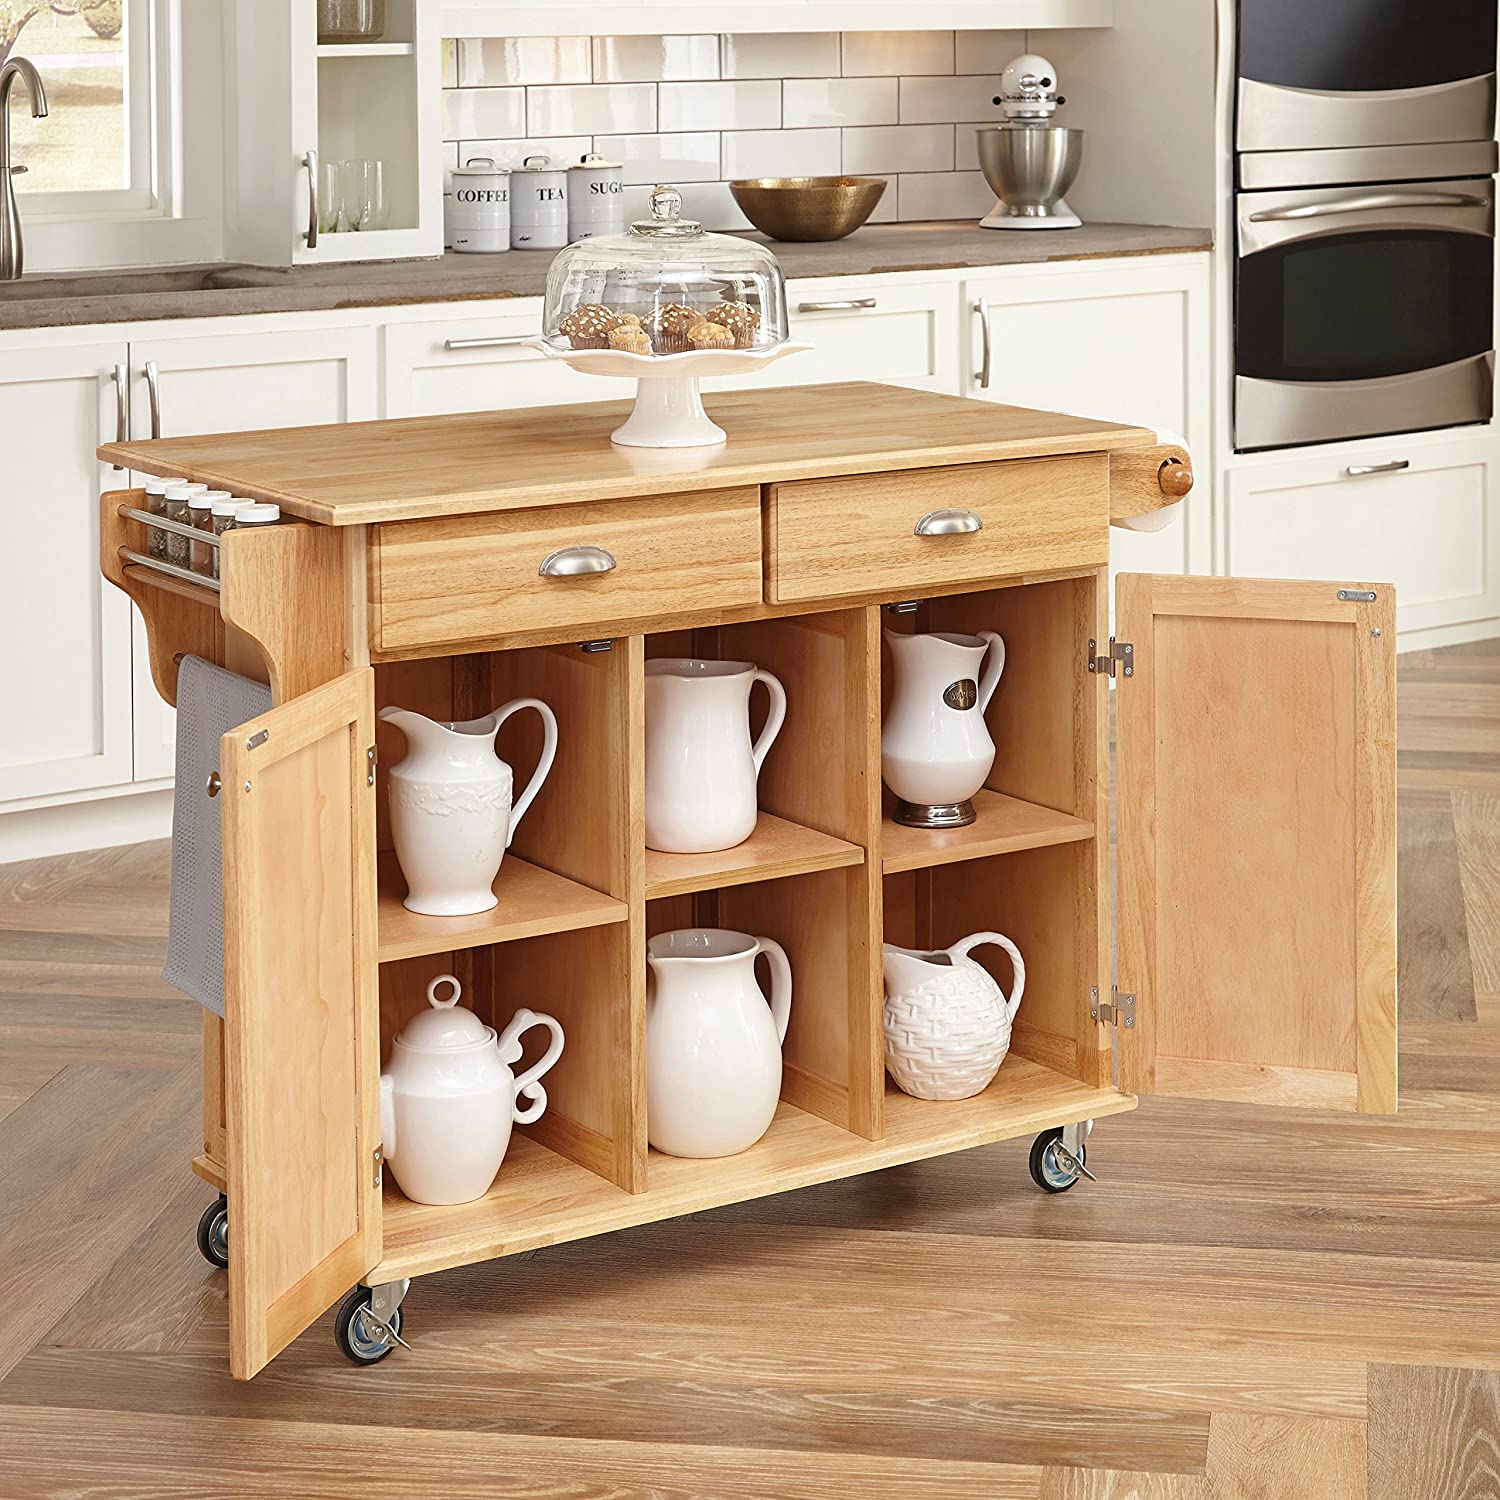 amazon com home styles 5099 95 napa kitchen center natural amazon com home styles 5099 95 napa kitchen center natural finish bar serving carts